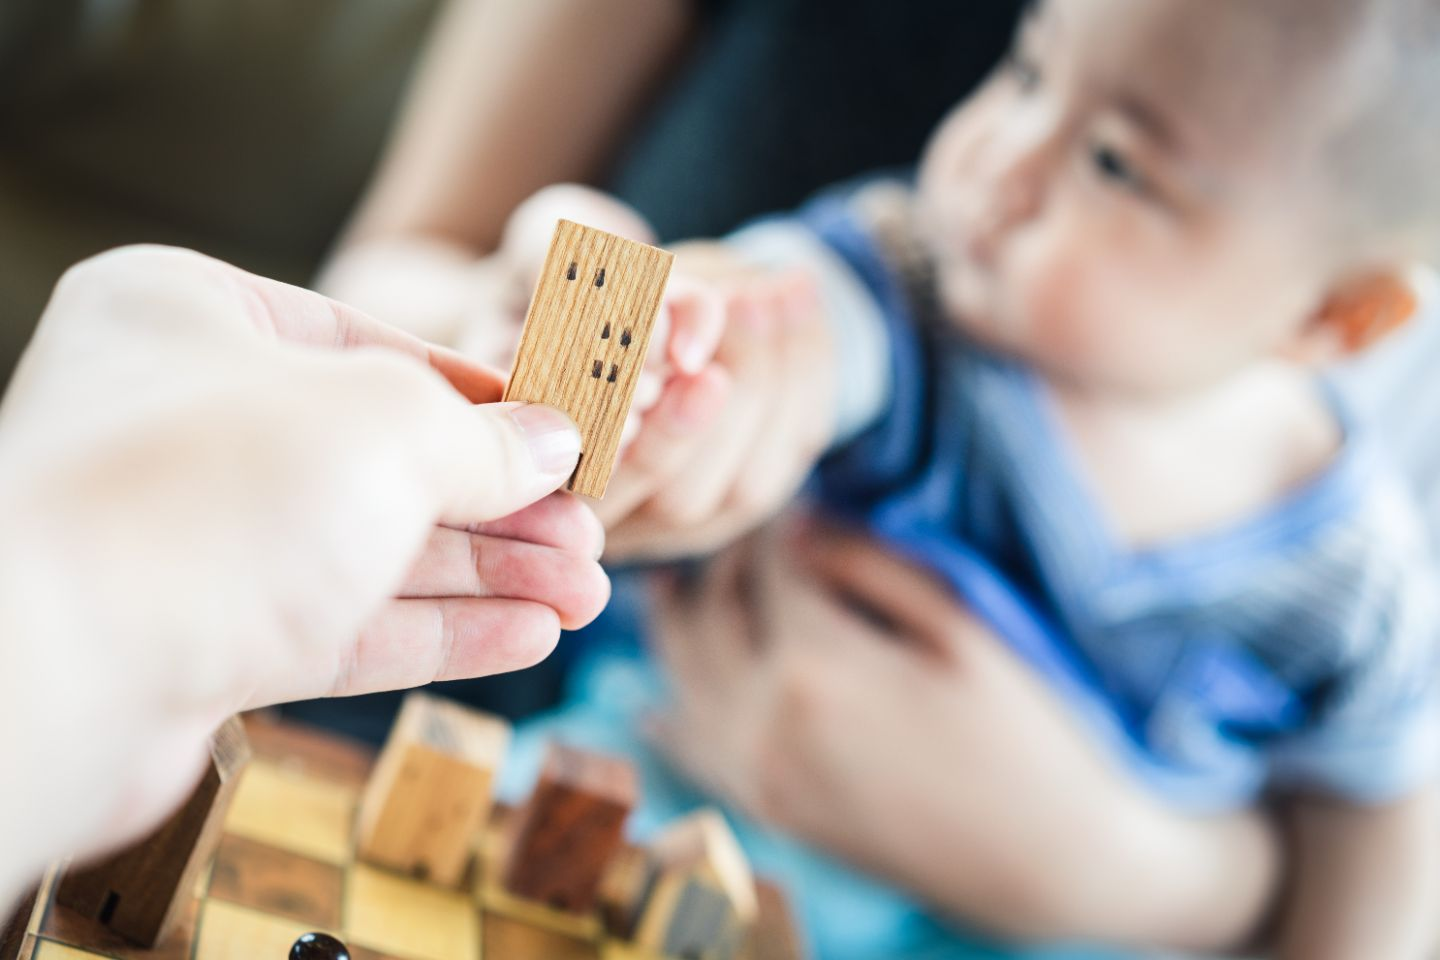 Blocks handed to child